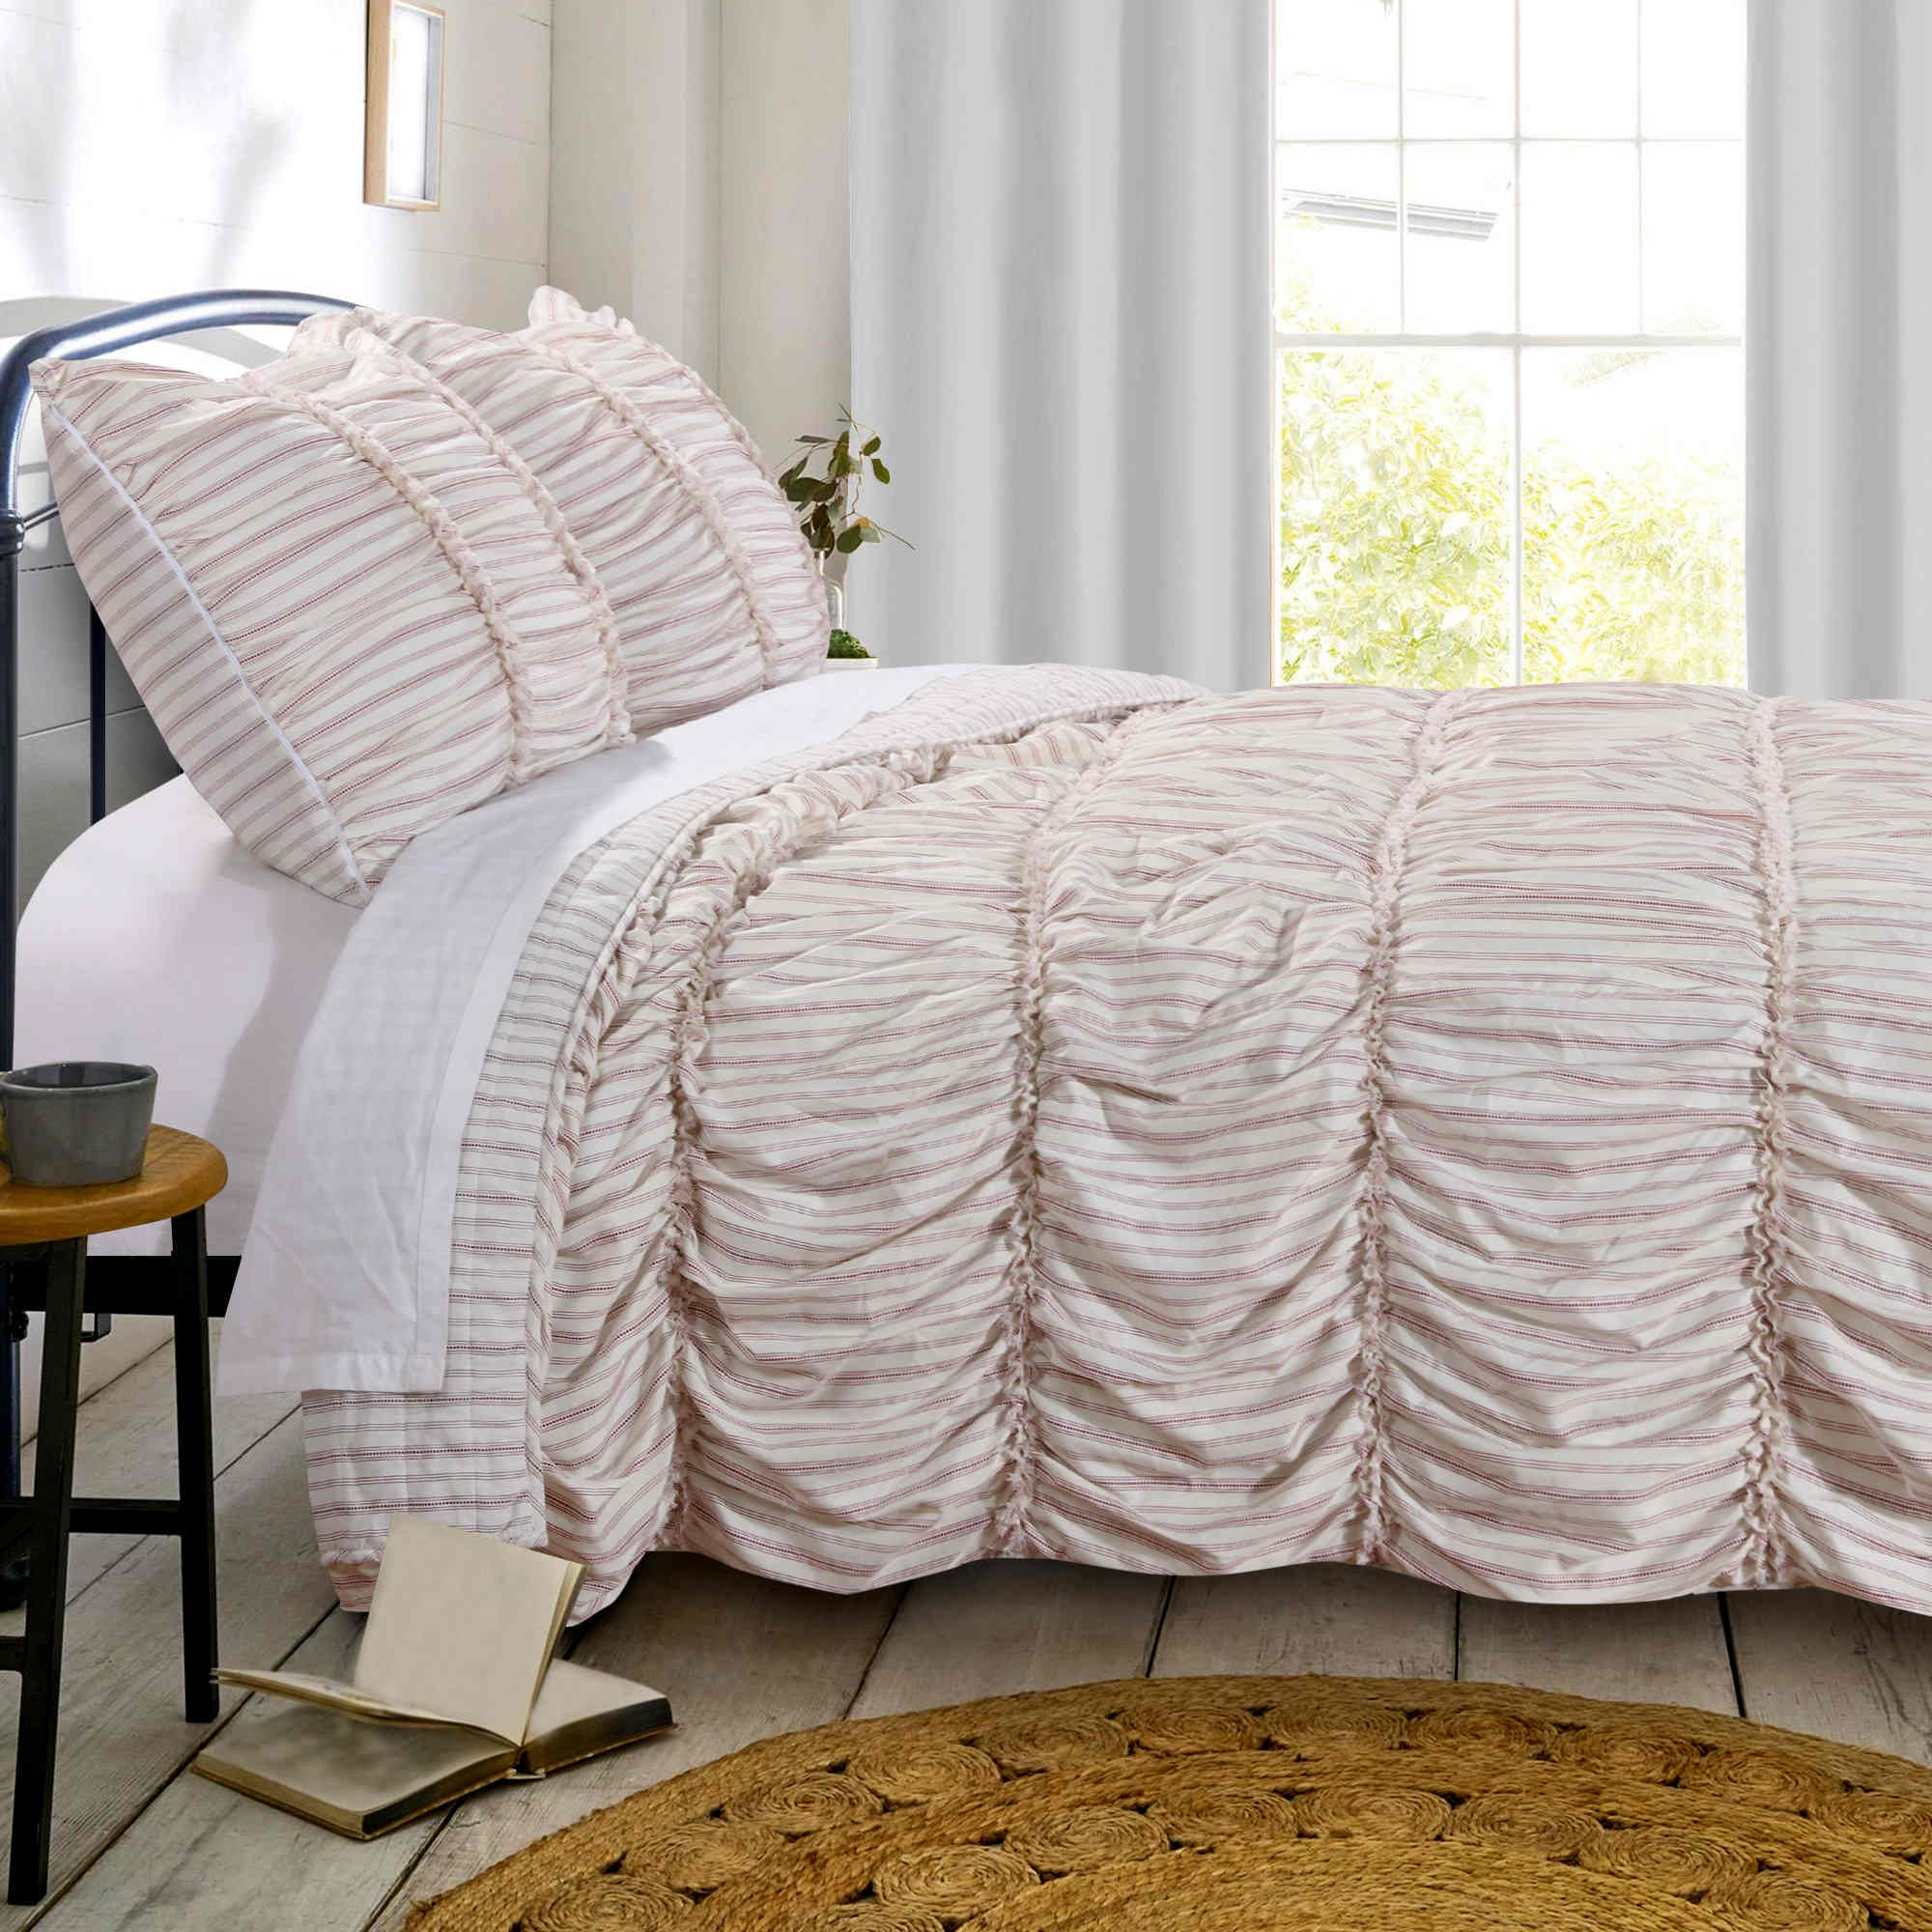 Farmhouse Chic Red Quilt Set, 3-piece King